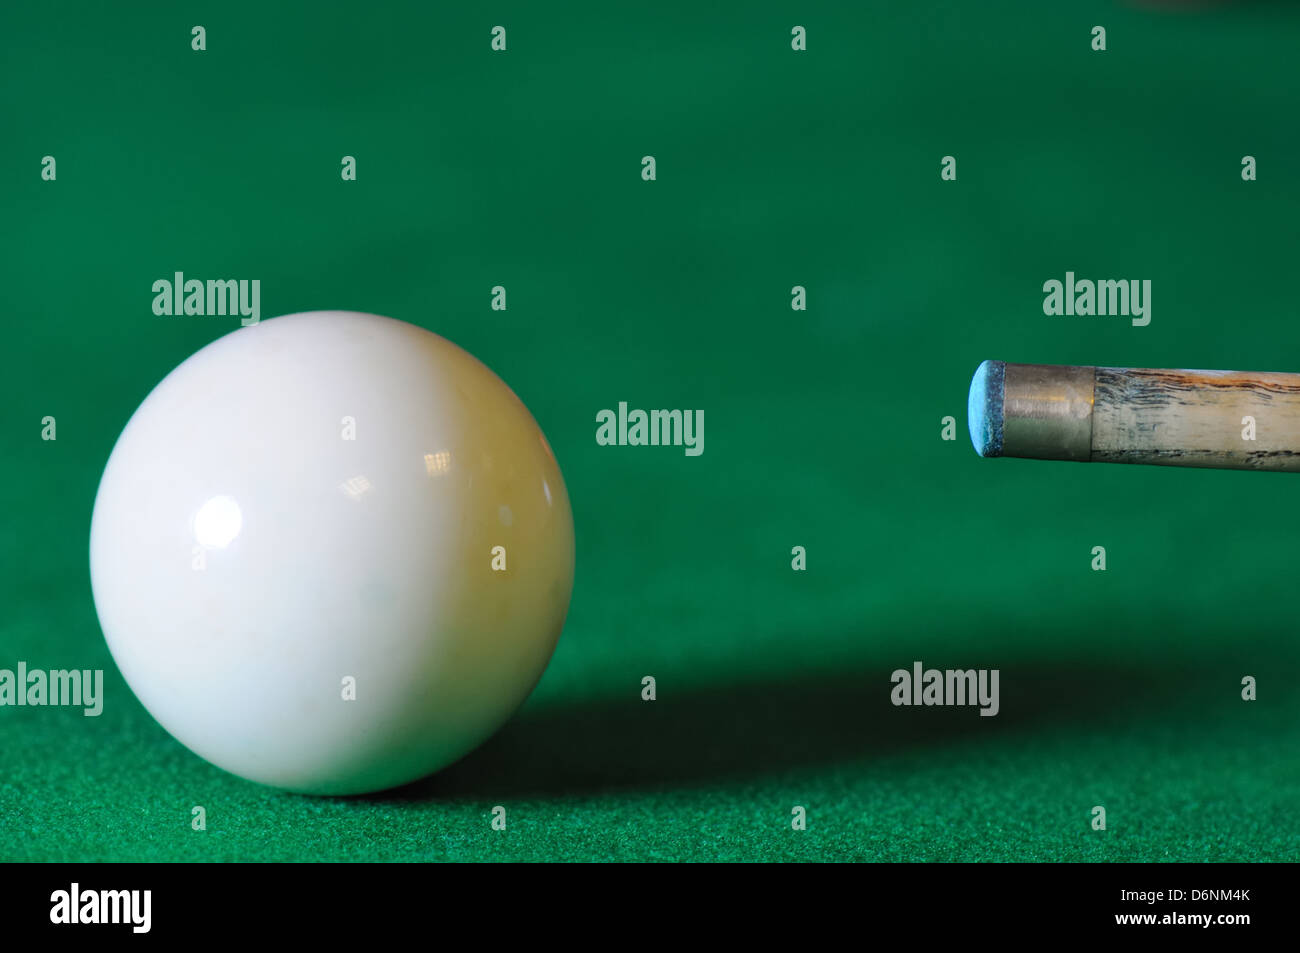 Close up of snooker ball and cue tip - Stock Image